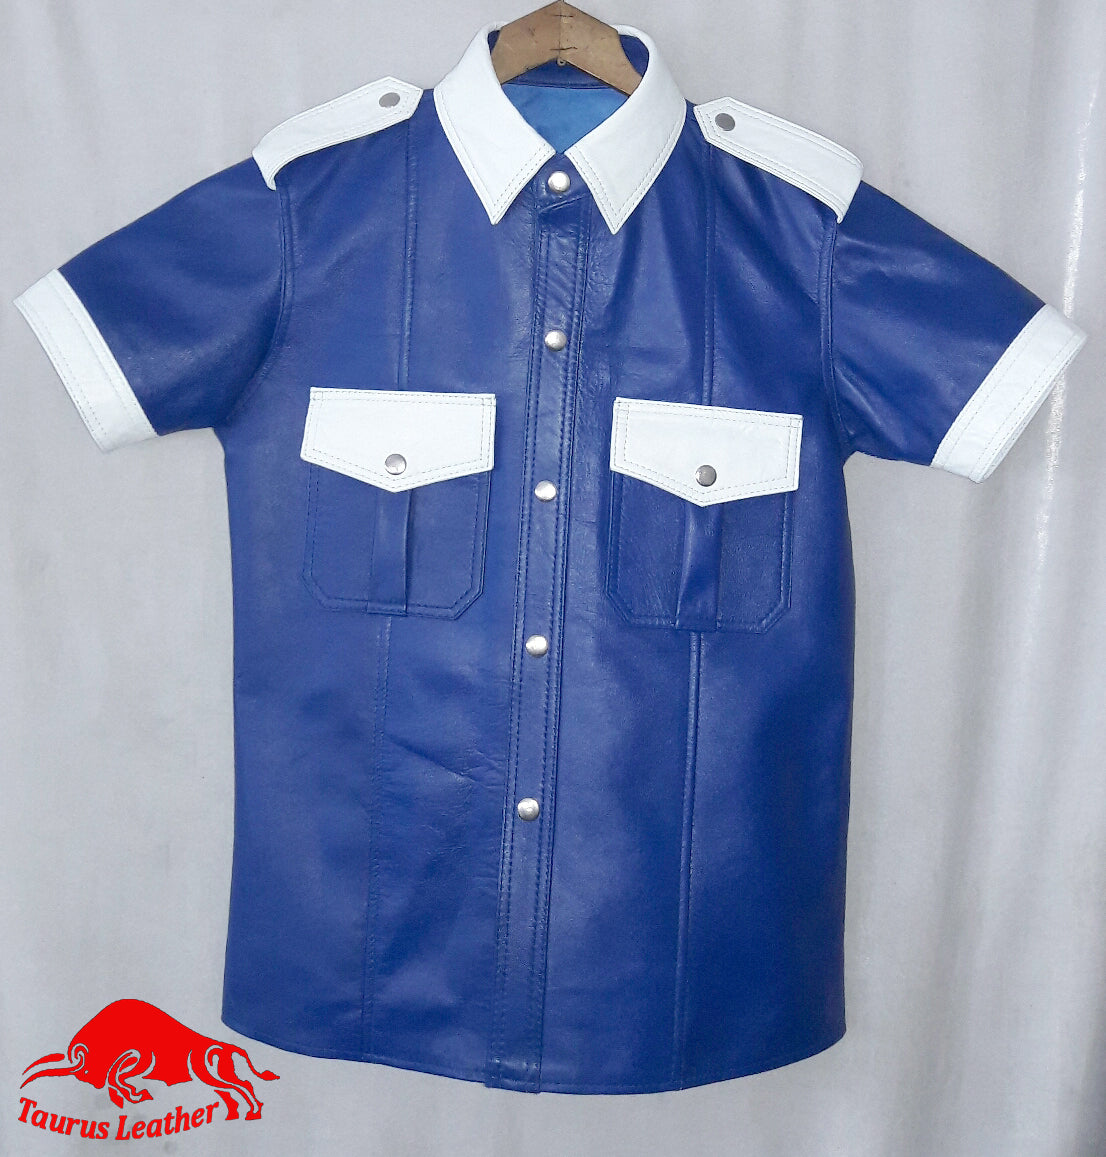 Dark Blue Sheep Leather Shirt With White Contrast